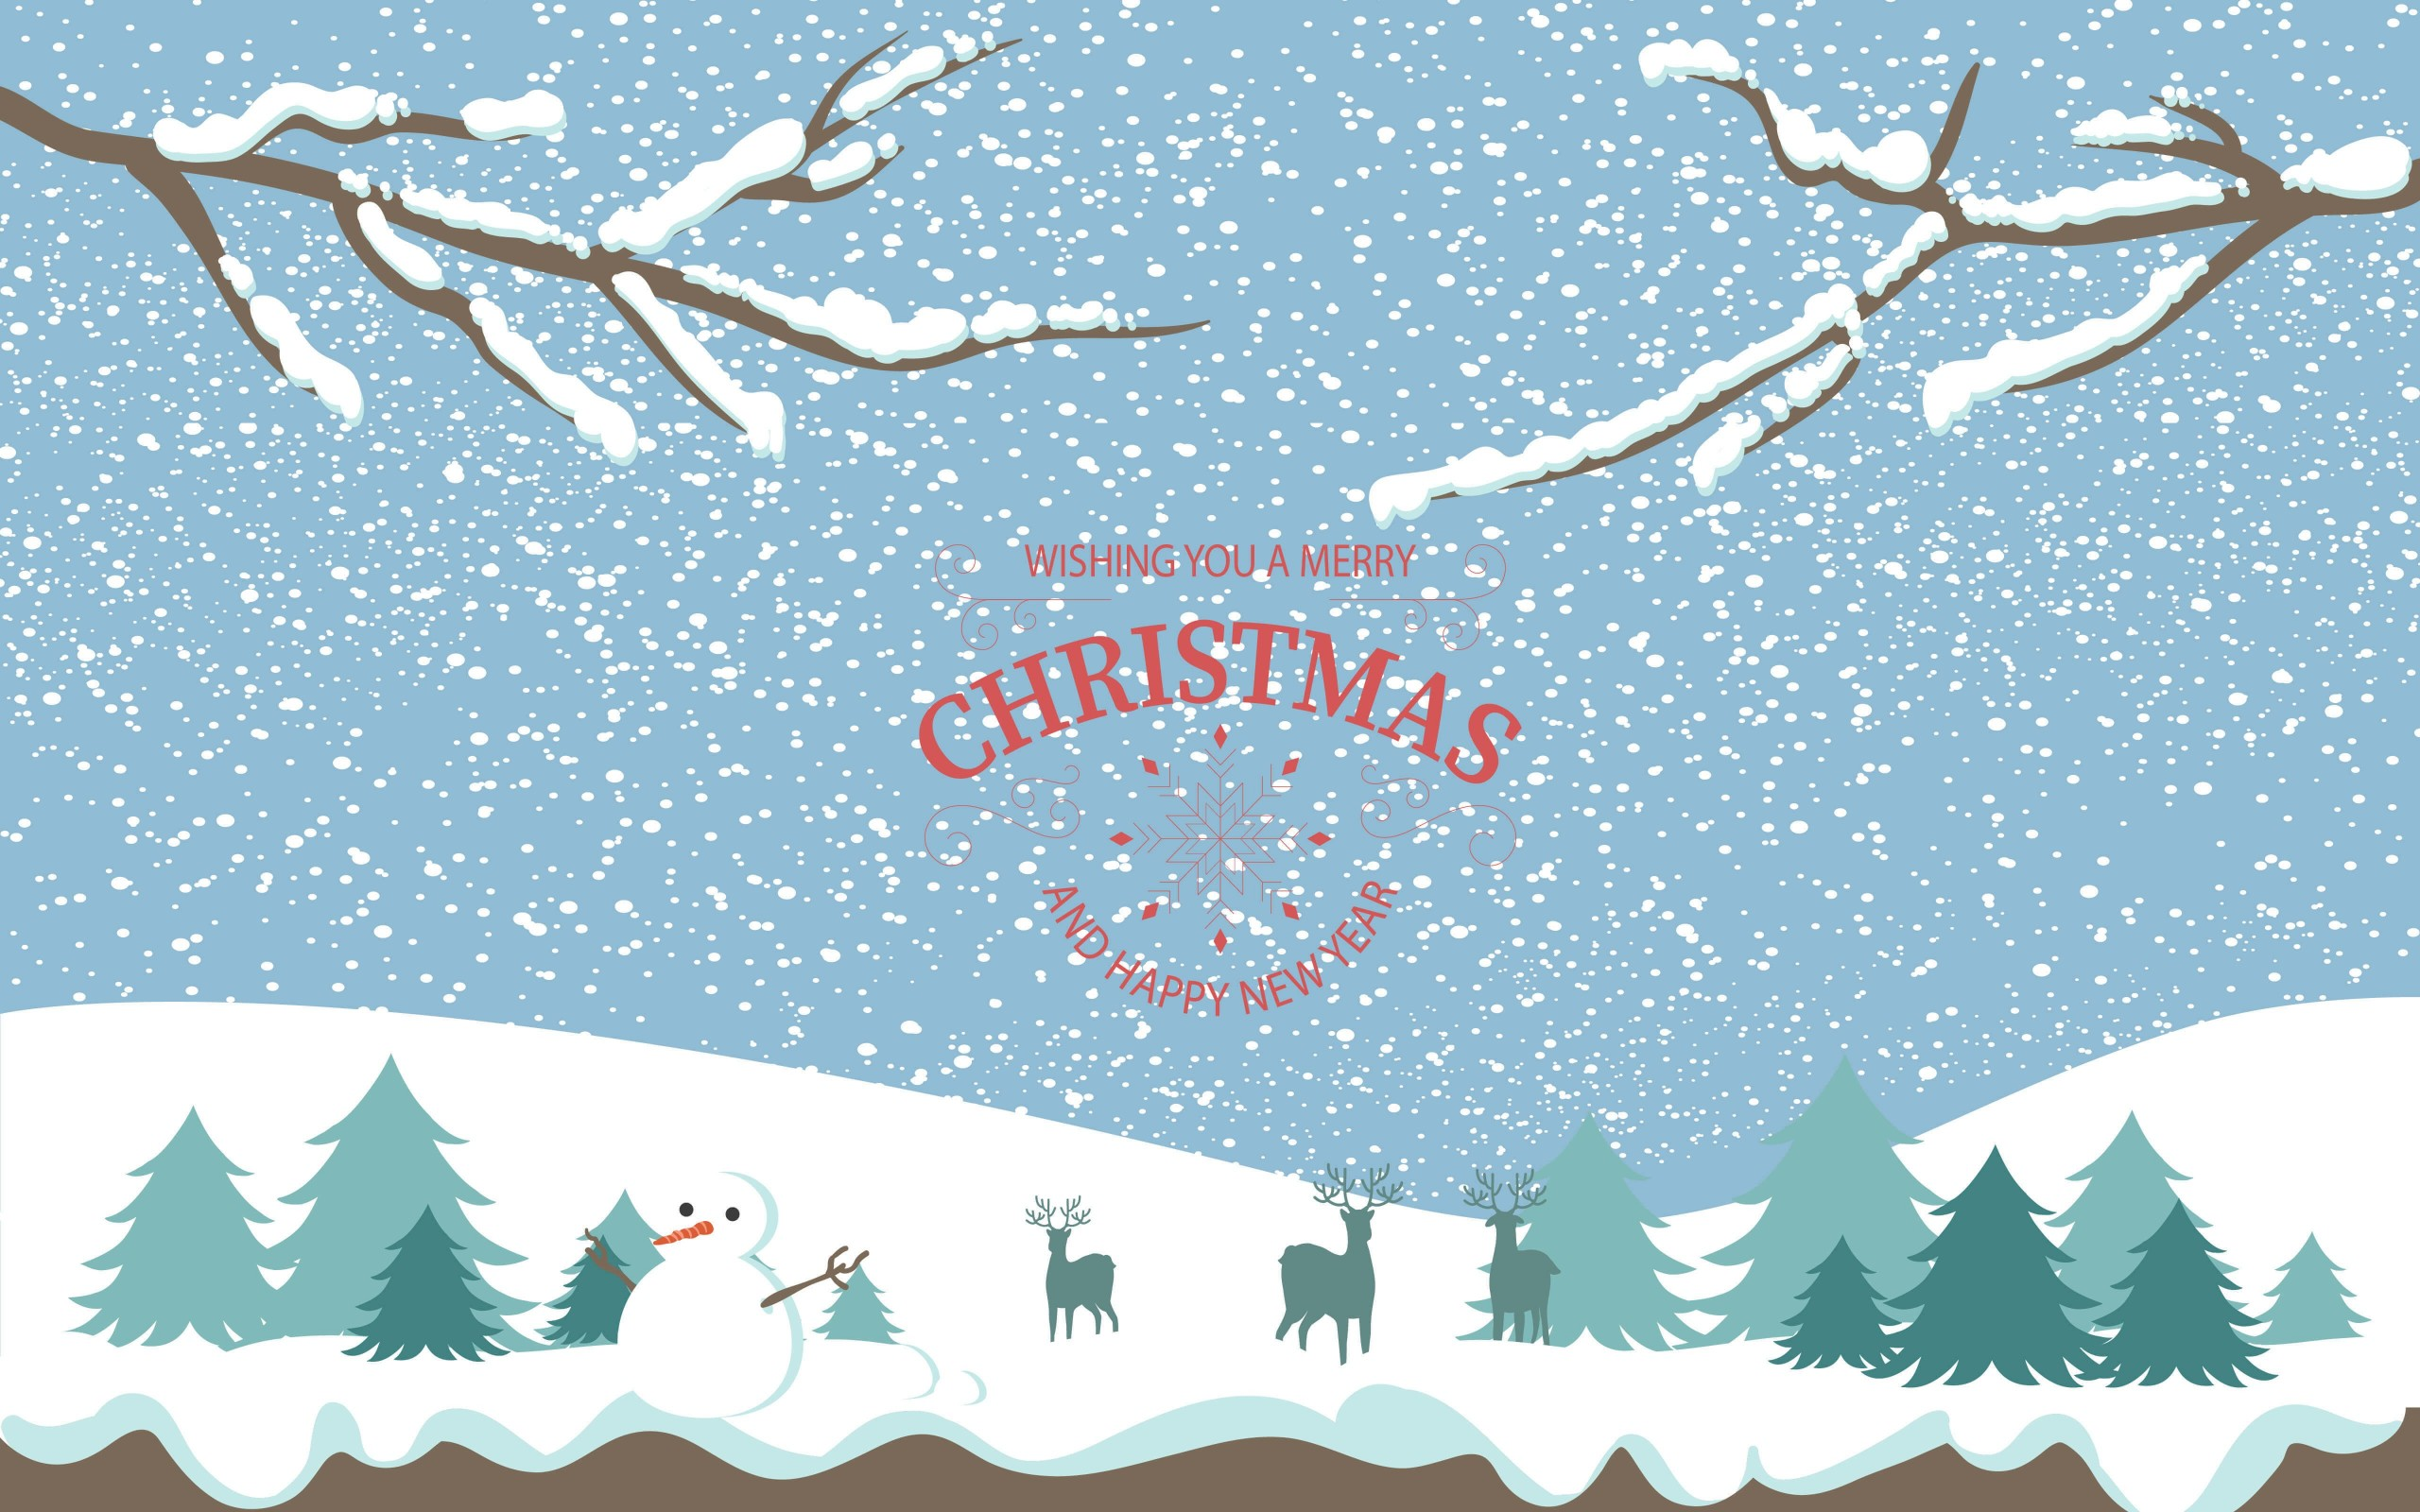 Merry Christmas Illustration Wallpaper for Desktop 2560x1600